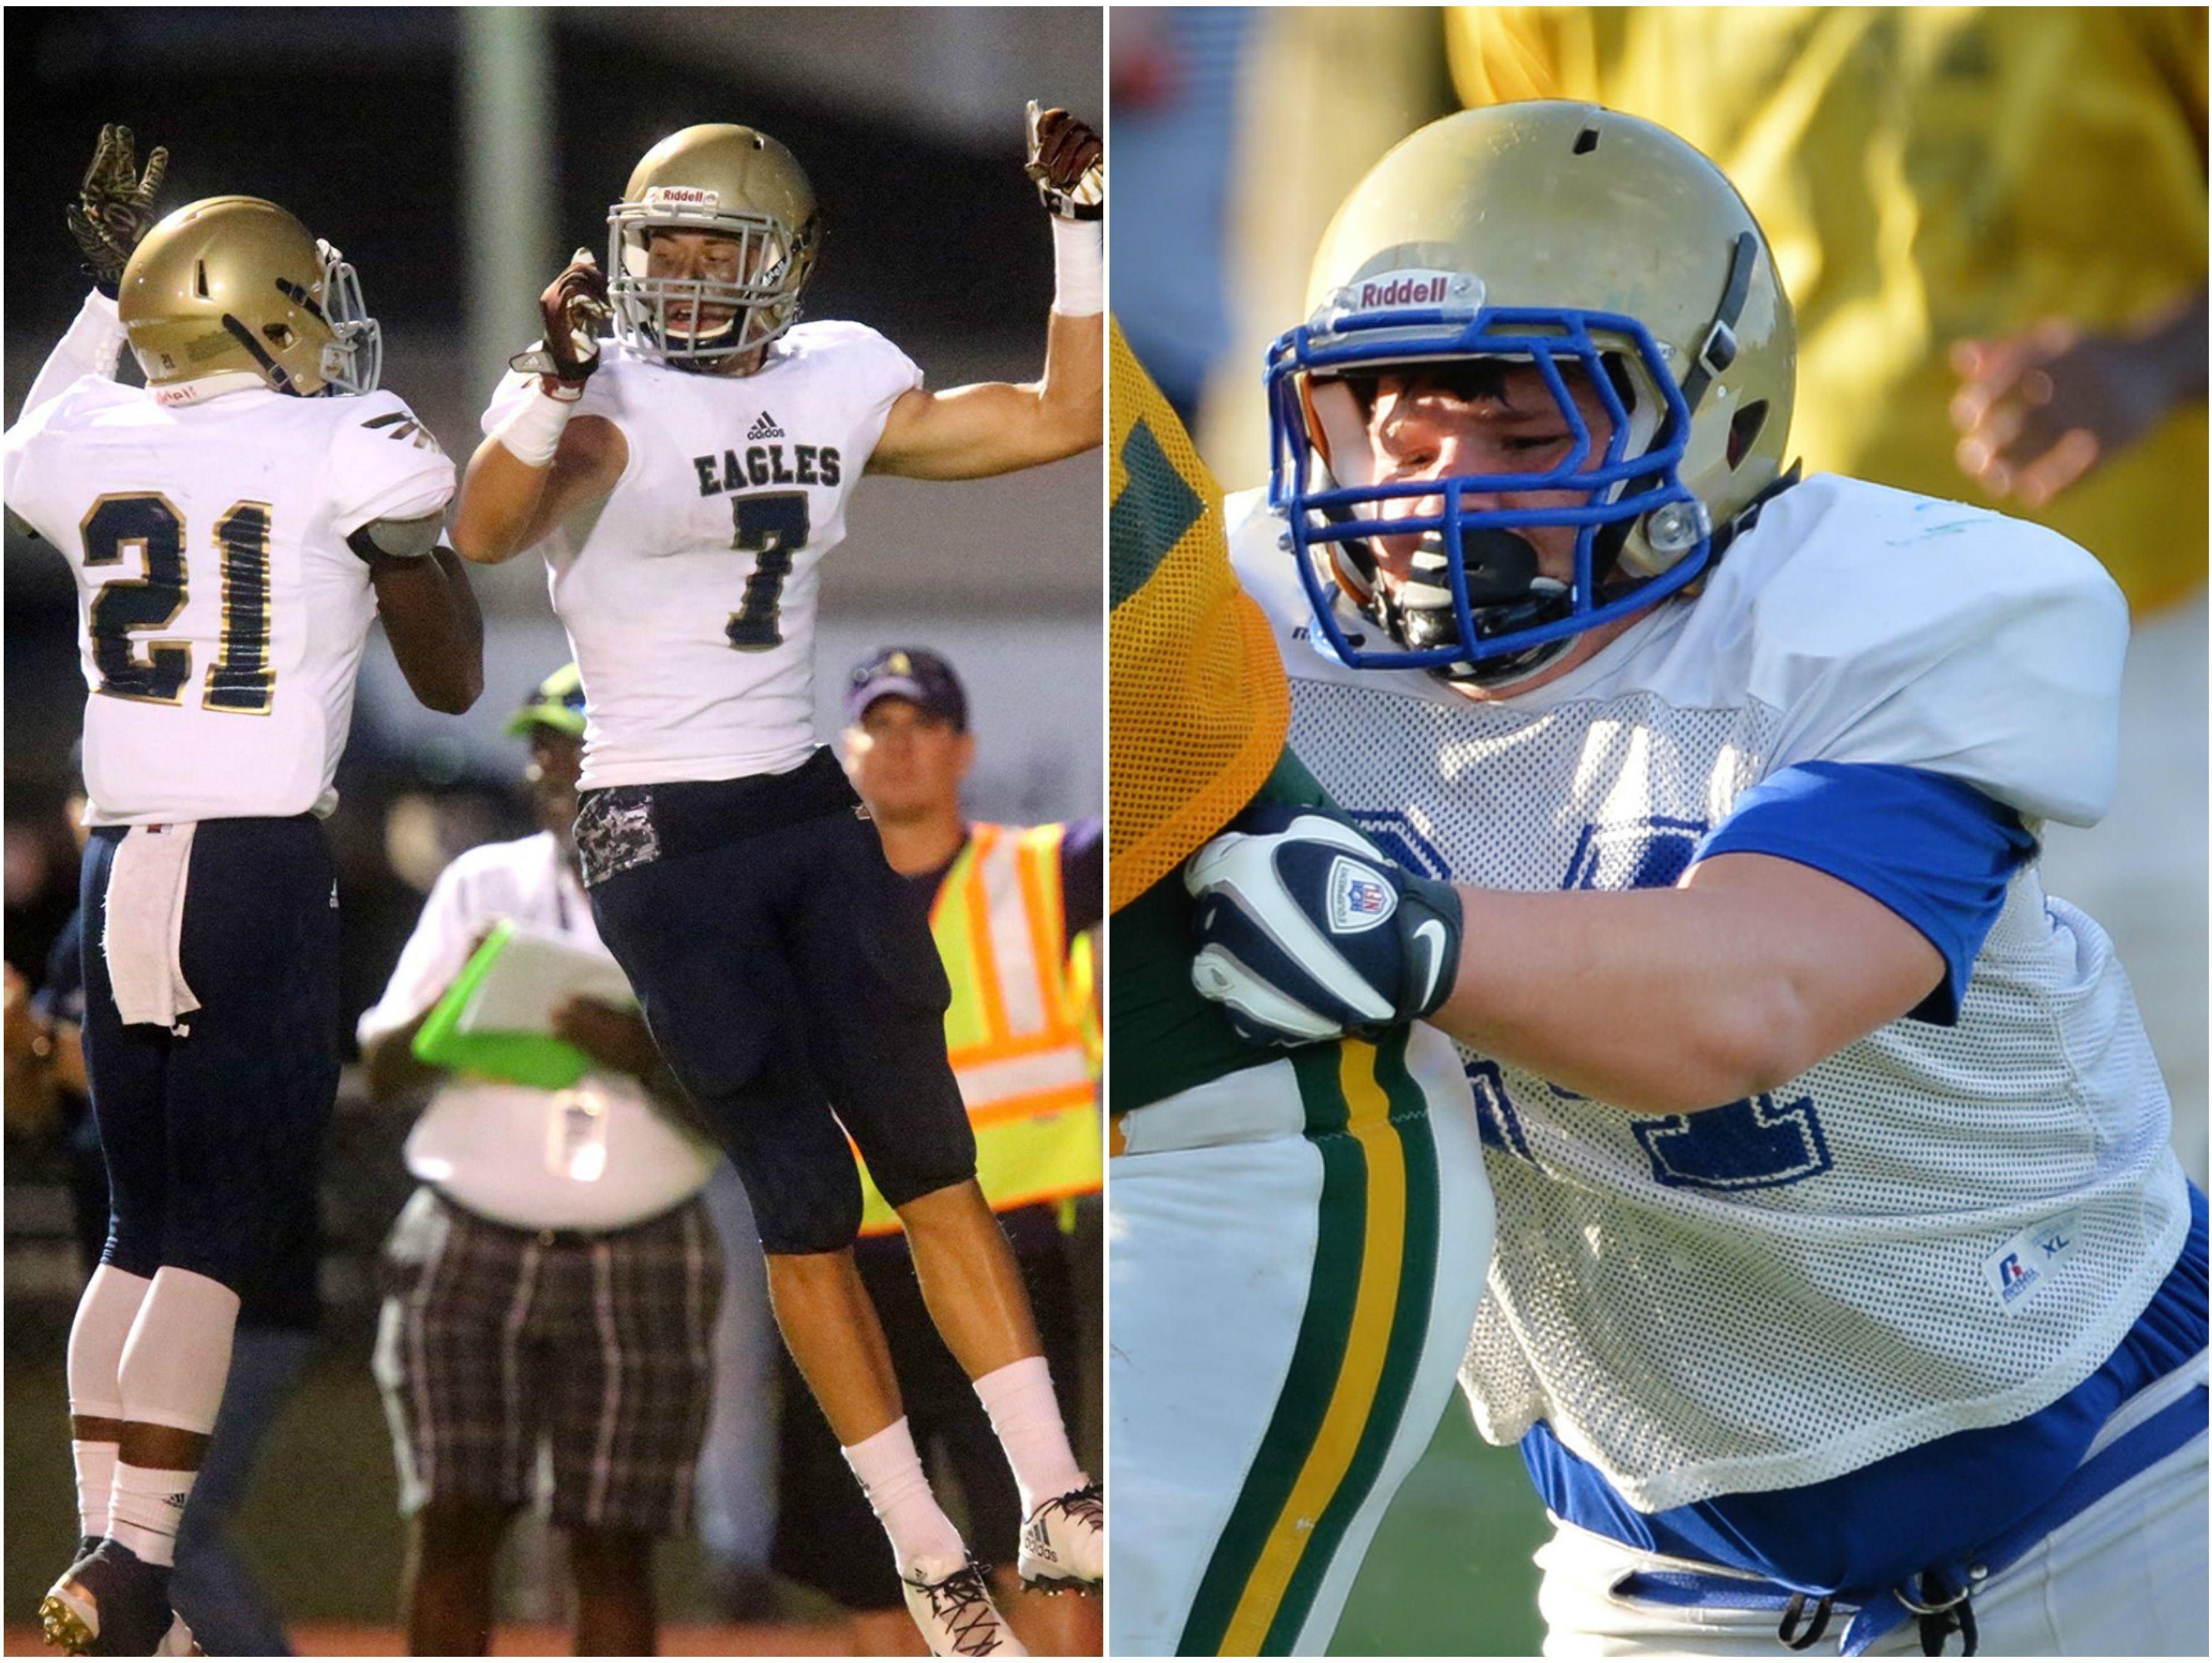 Independence's Troy Henderson and Landon Guidry (left) and Shelbyville's Cody Martin (right)